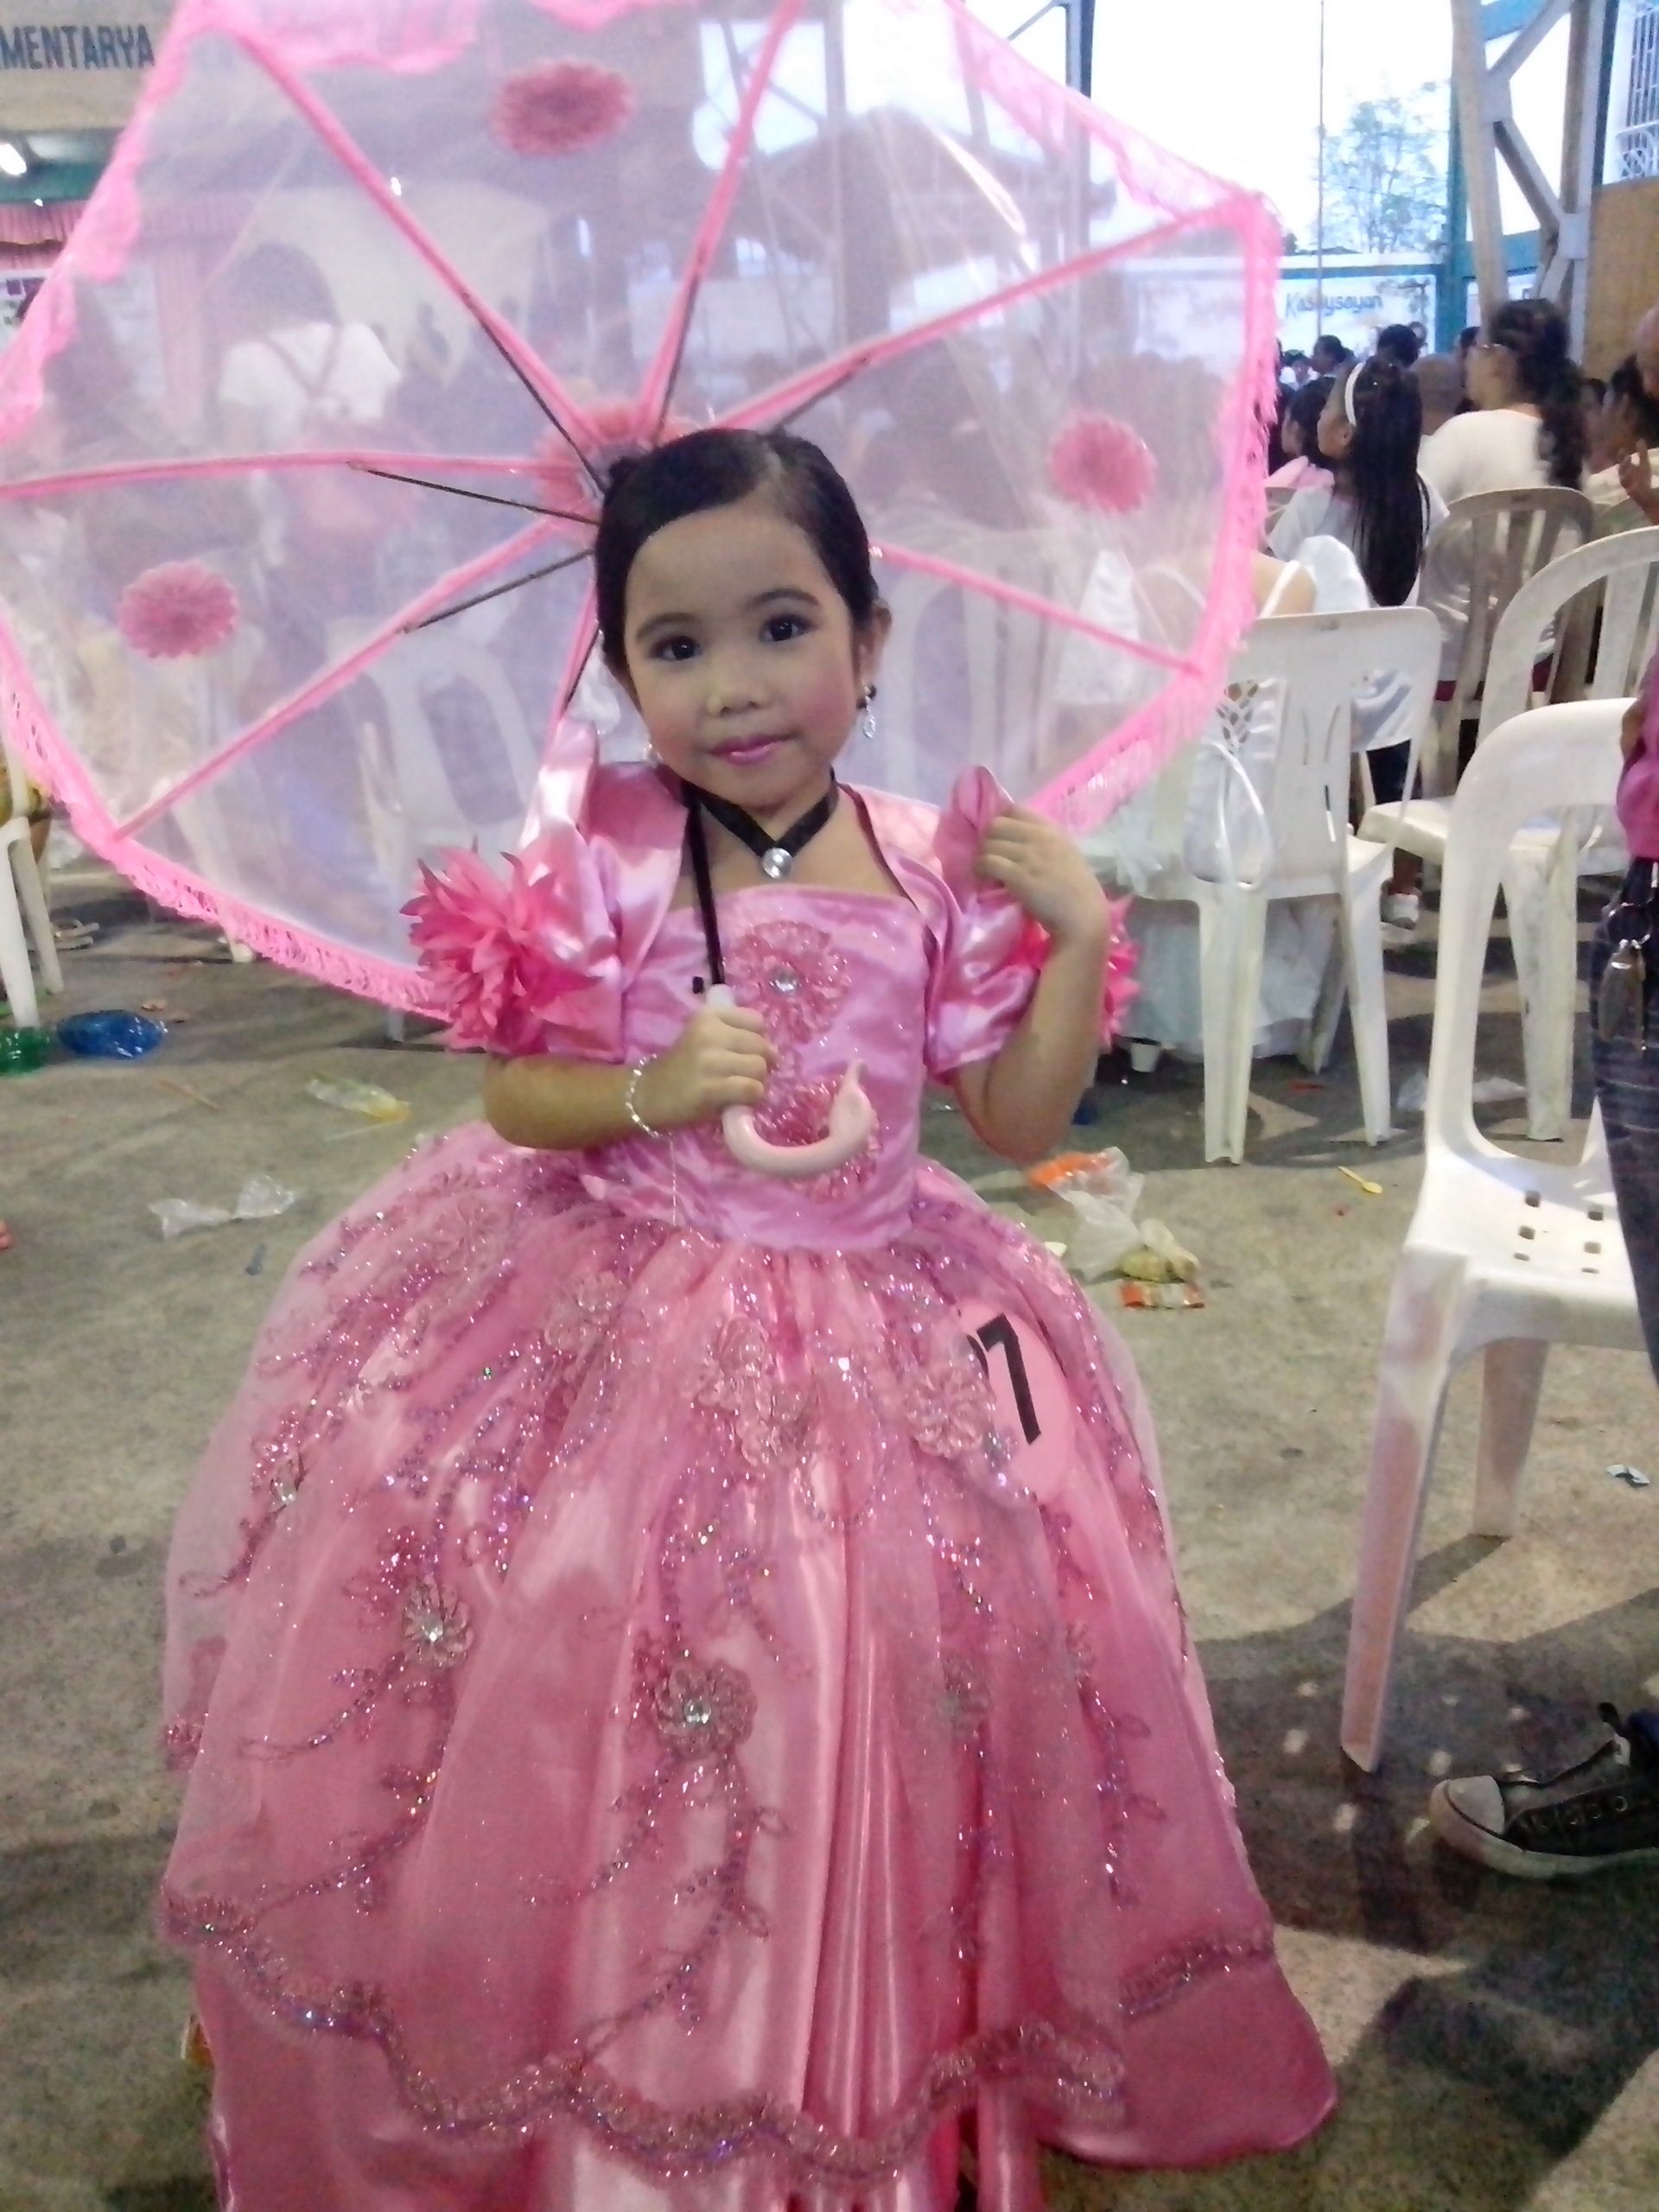 filipiniana gown with lace umbrella   costumes, gowns etc ...